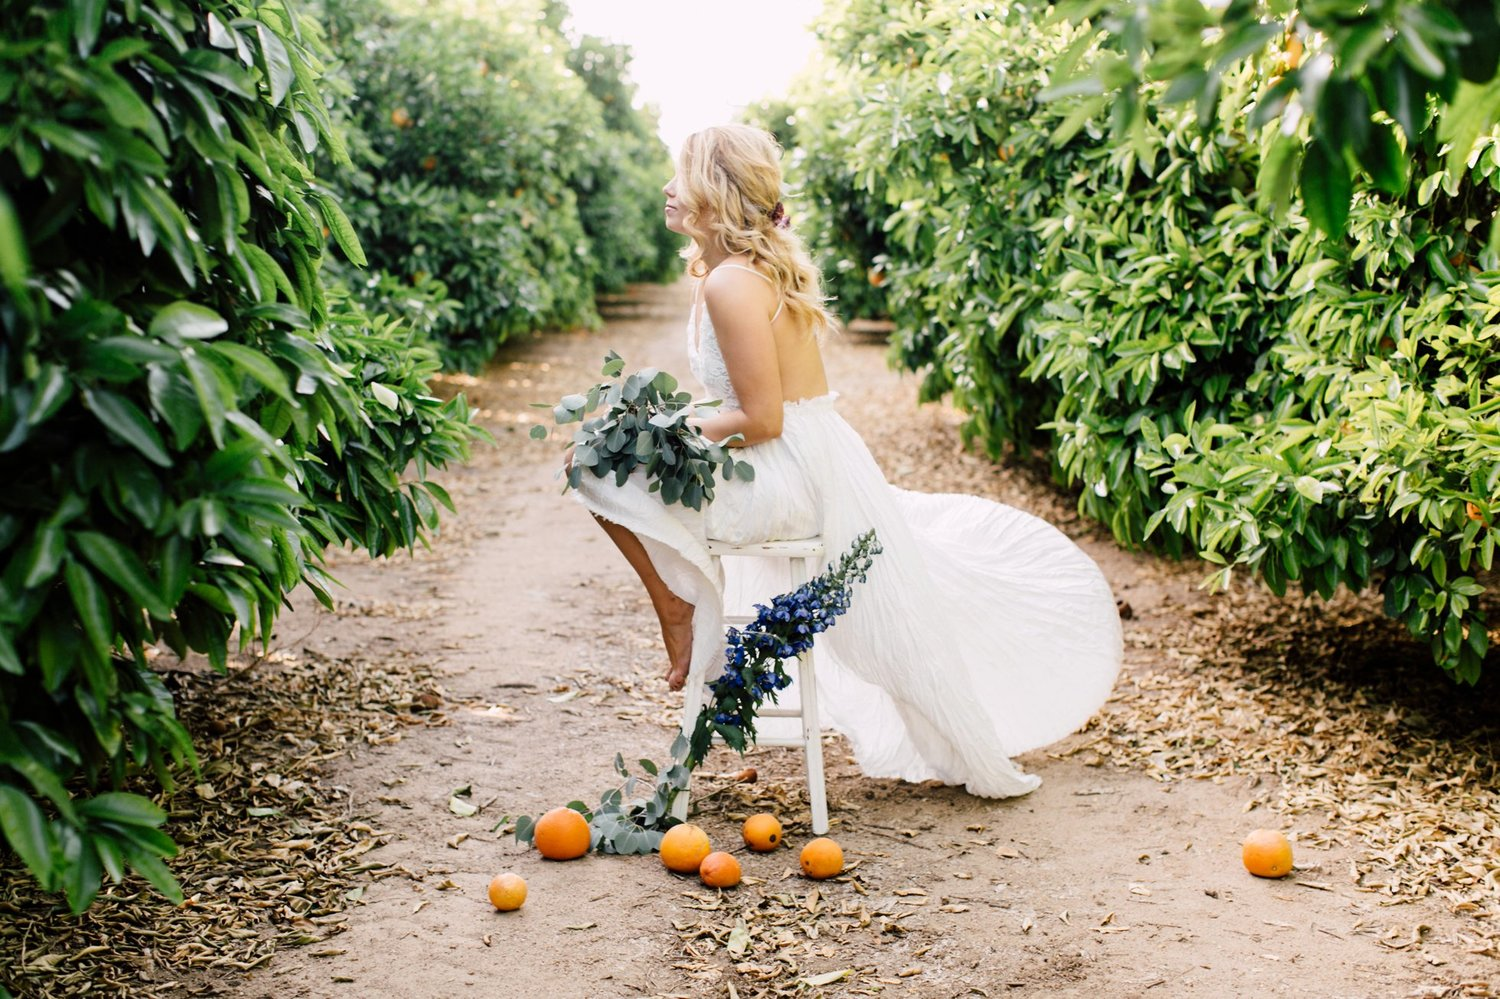 8010453f3e1e Makeup Inspiration in the Orange Groves - Featured on Style Me Pretty